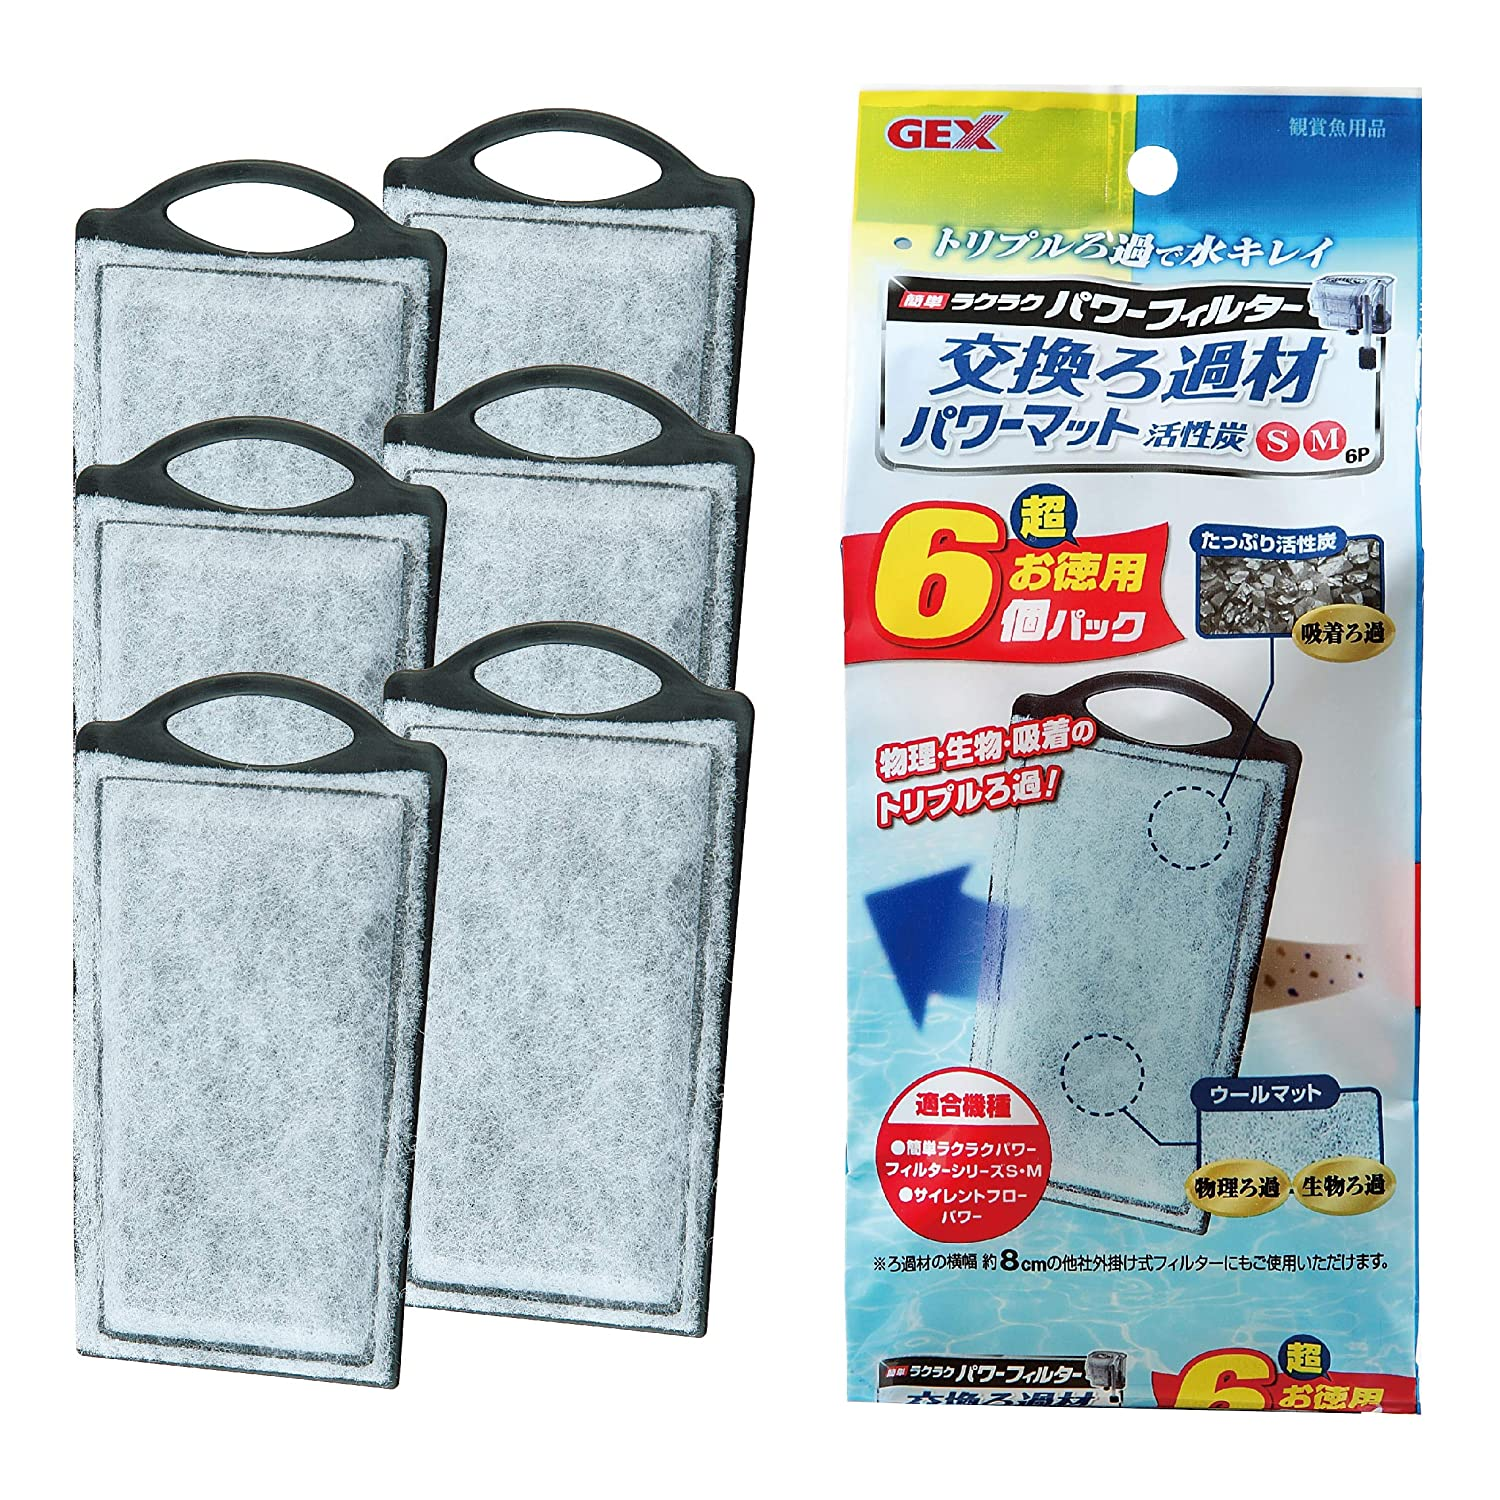 Gex Easy Easy filter replacement filtration wood SM 6 pcs